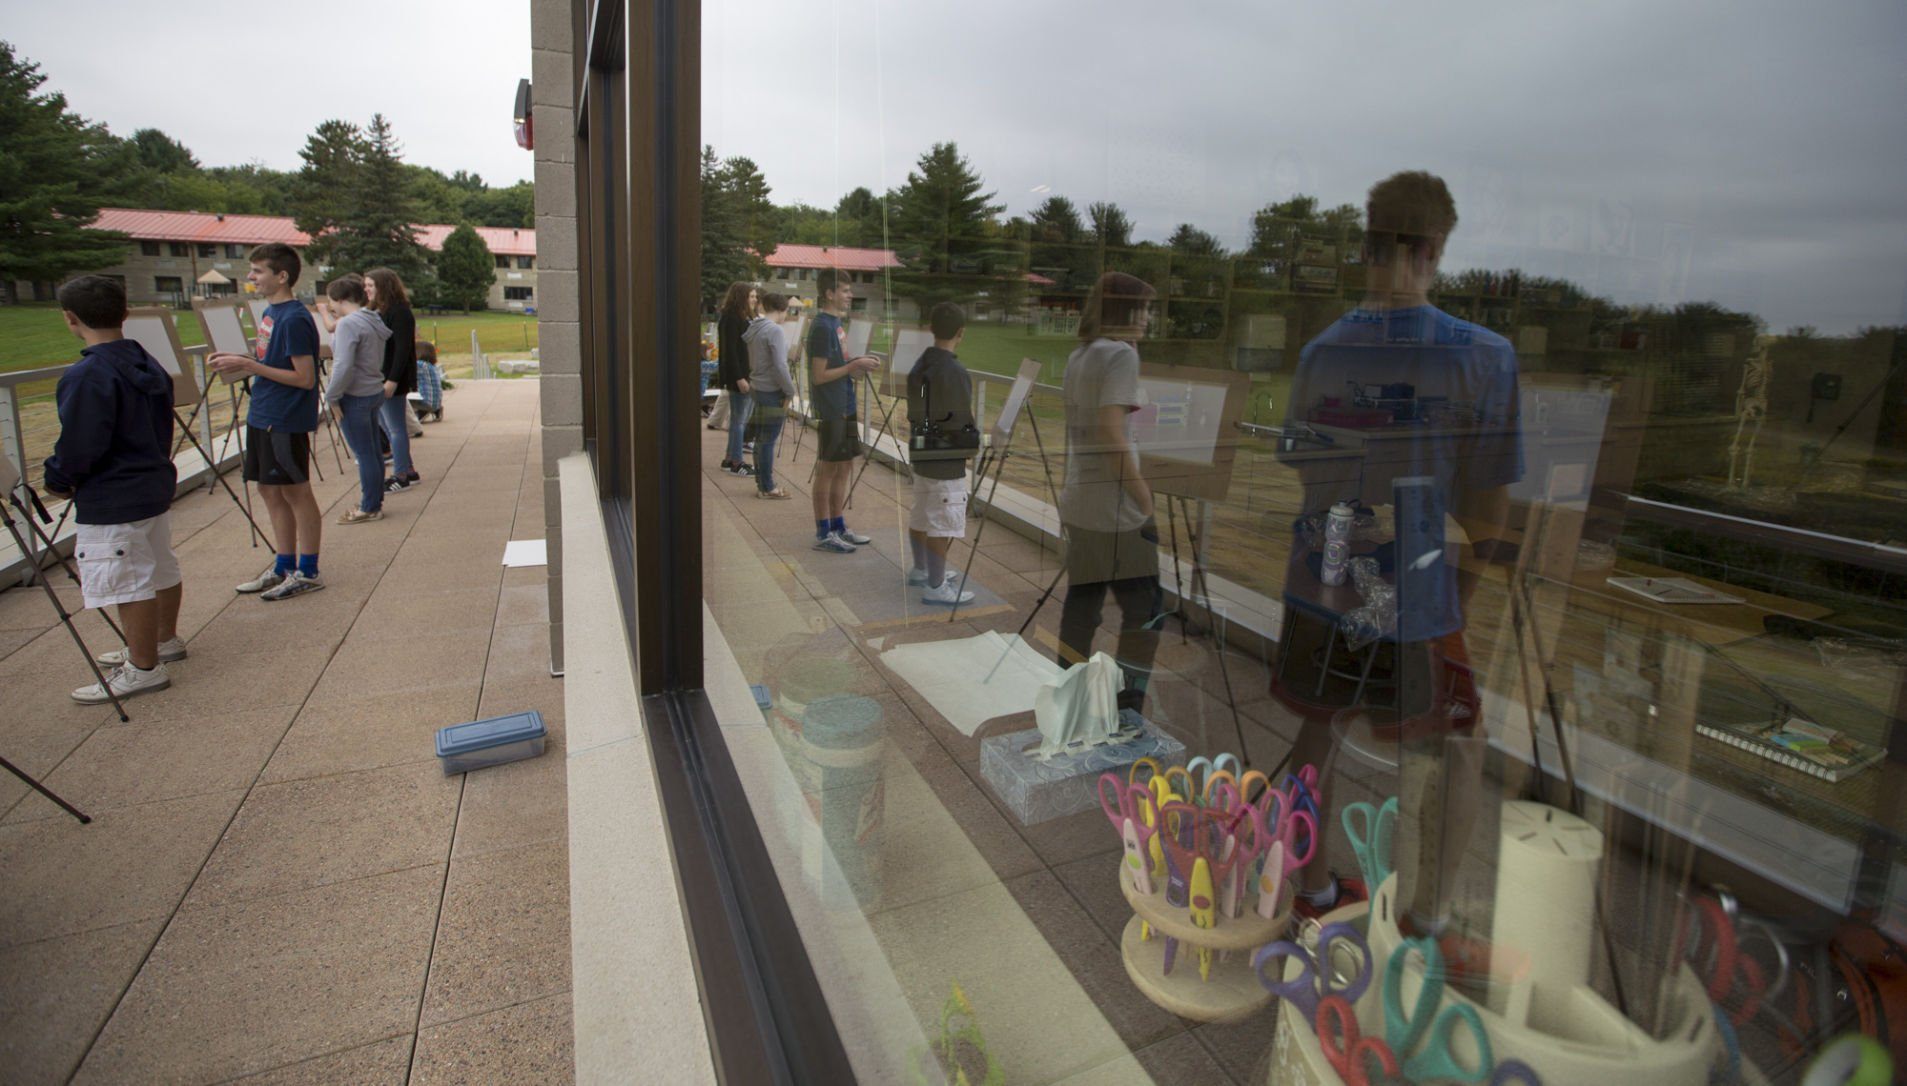 Attirant School Spotlight: New Patio, Art Rooms Inspire At Madison Country Day School